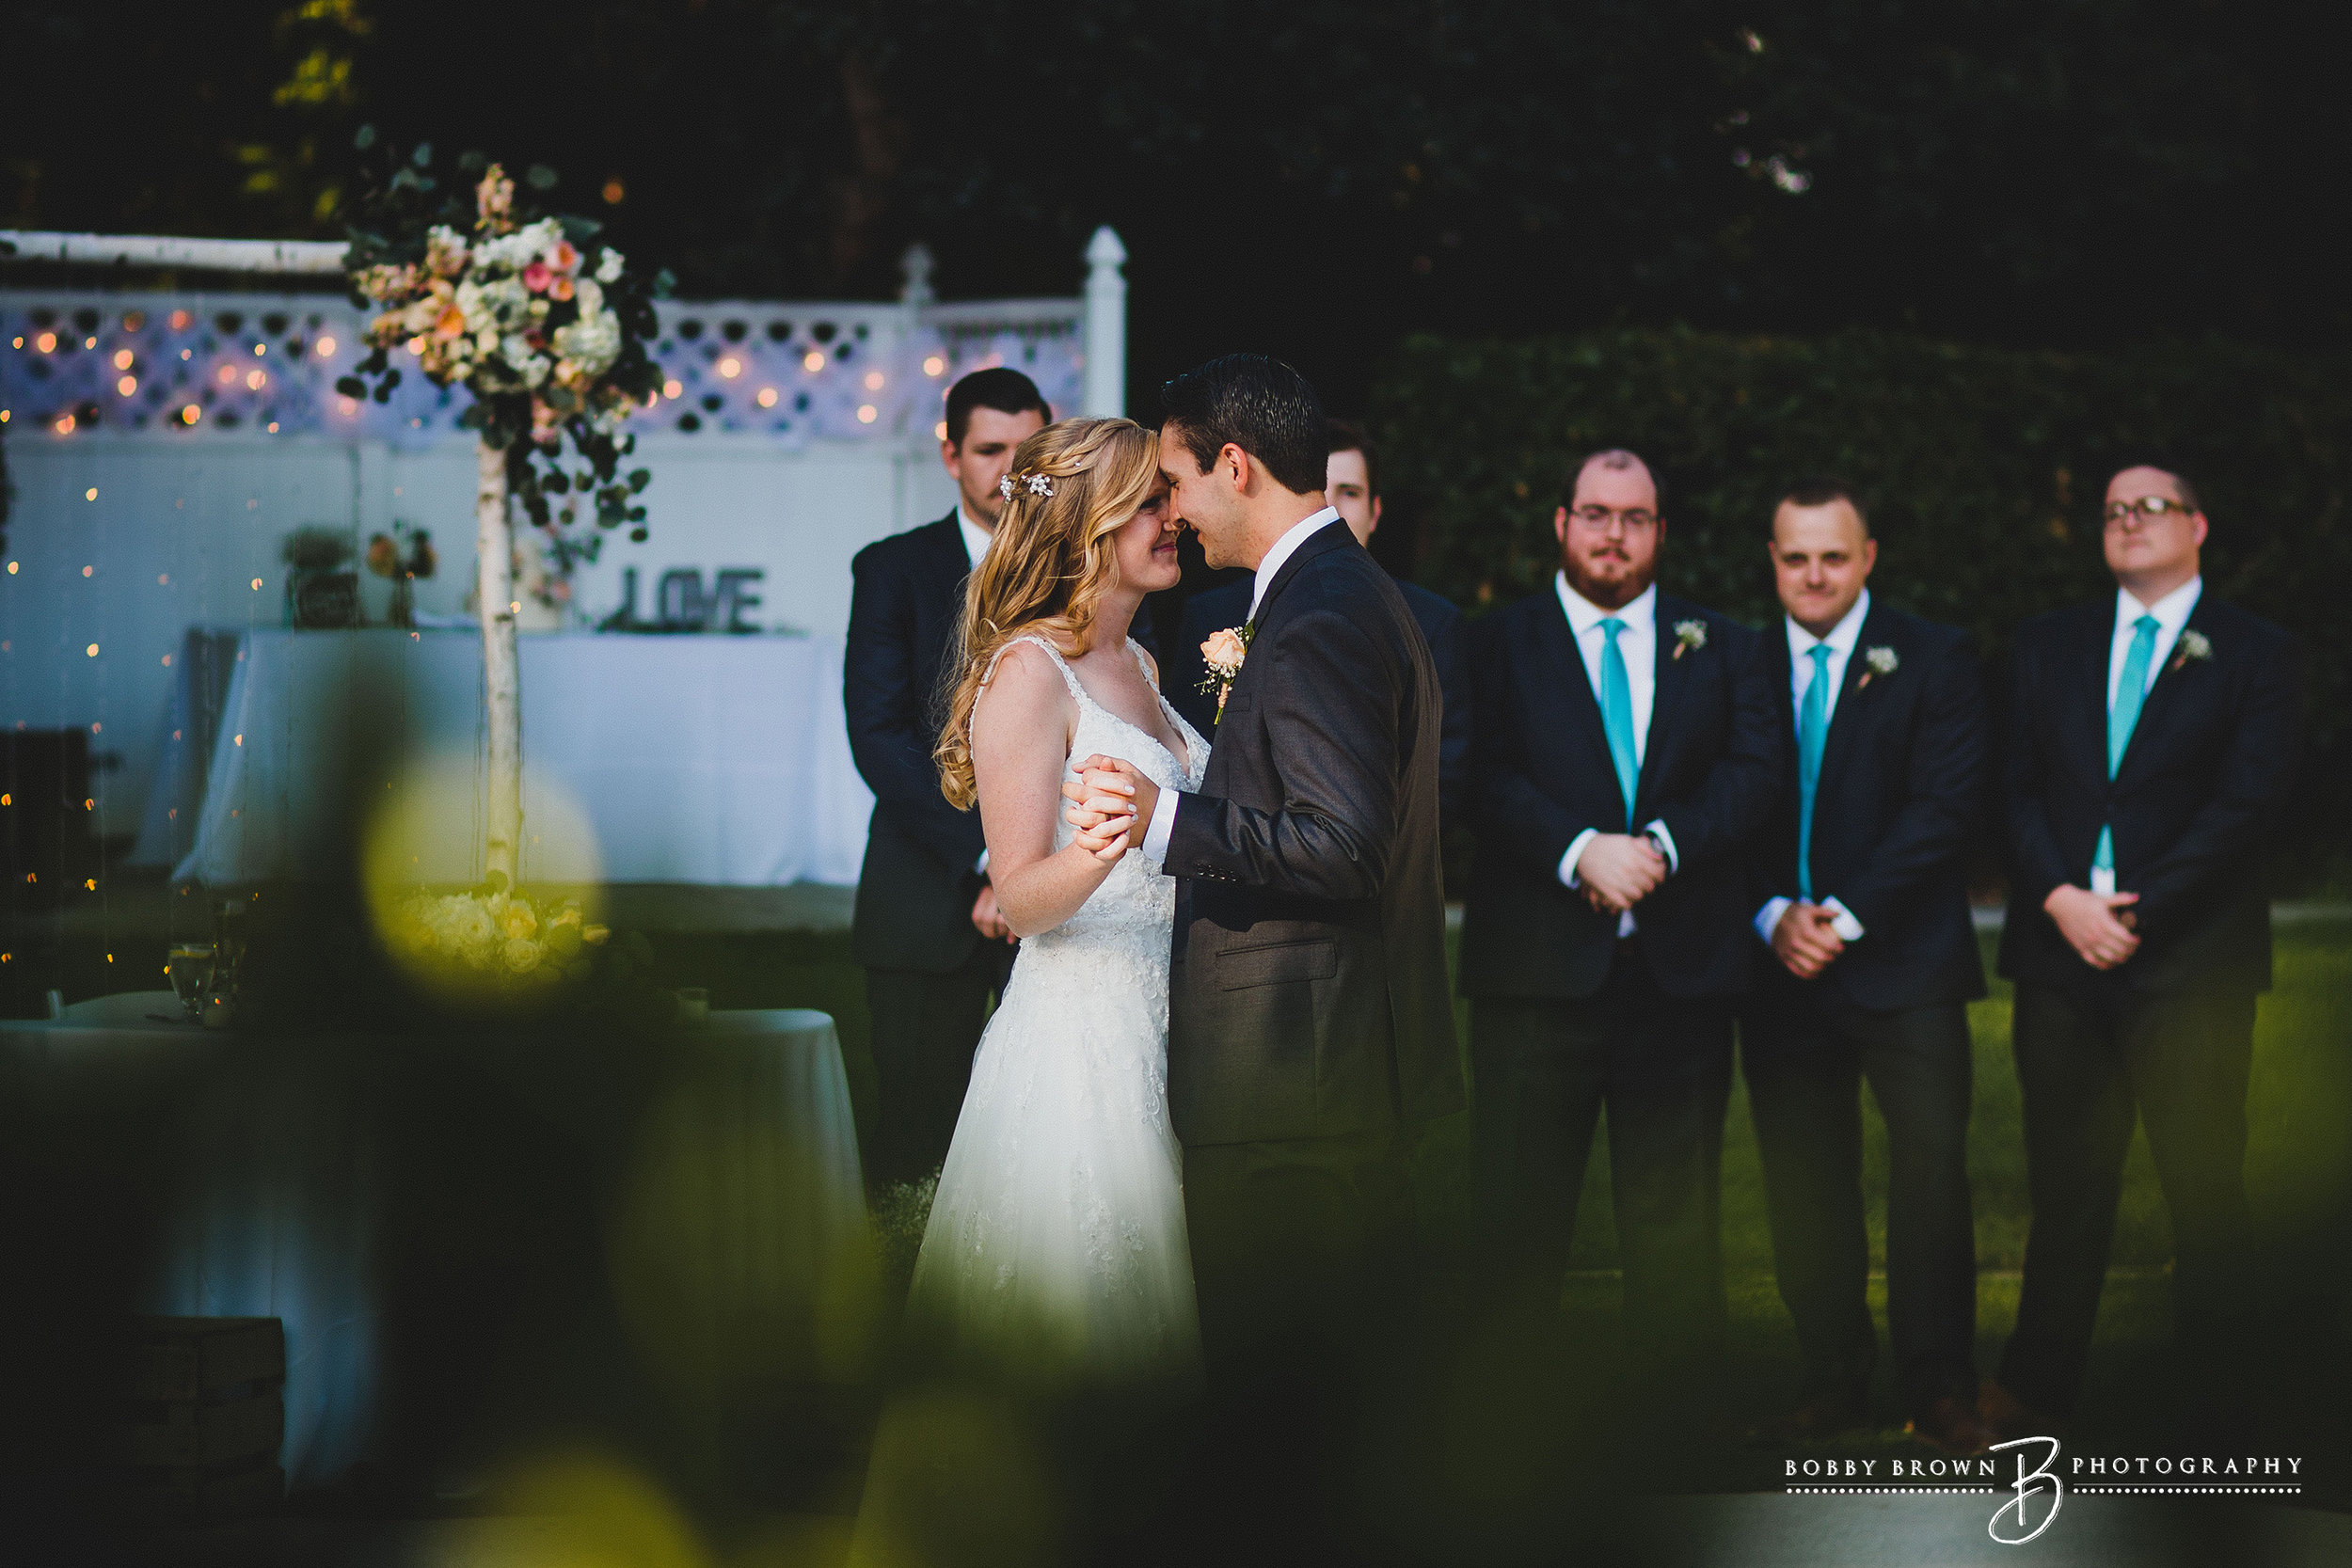 hugginswedding-742.jpg